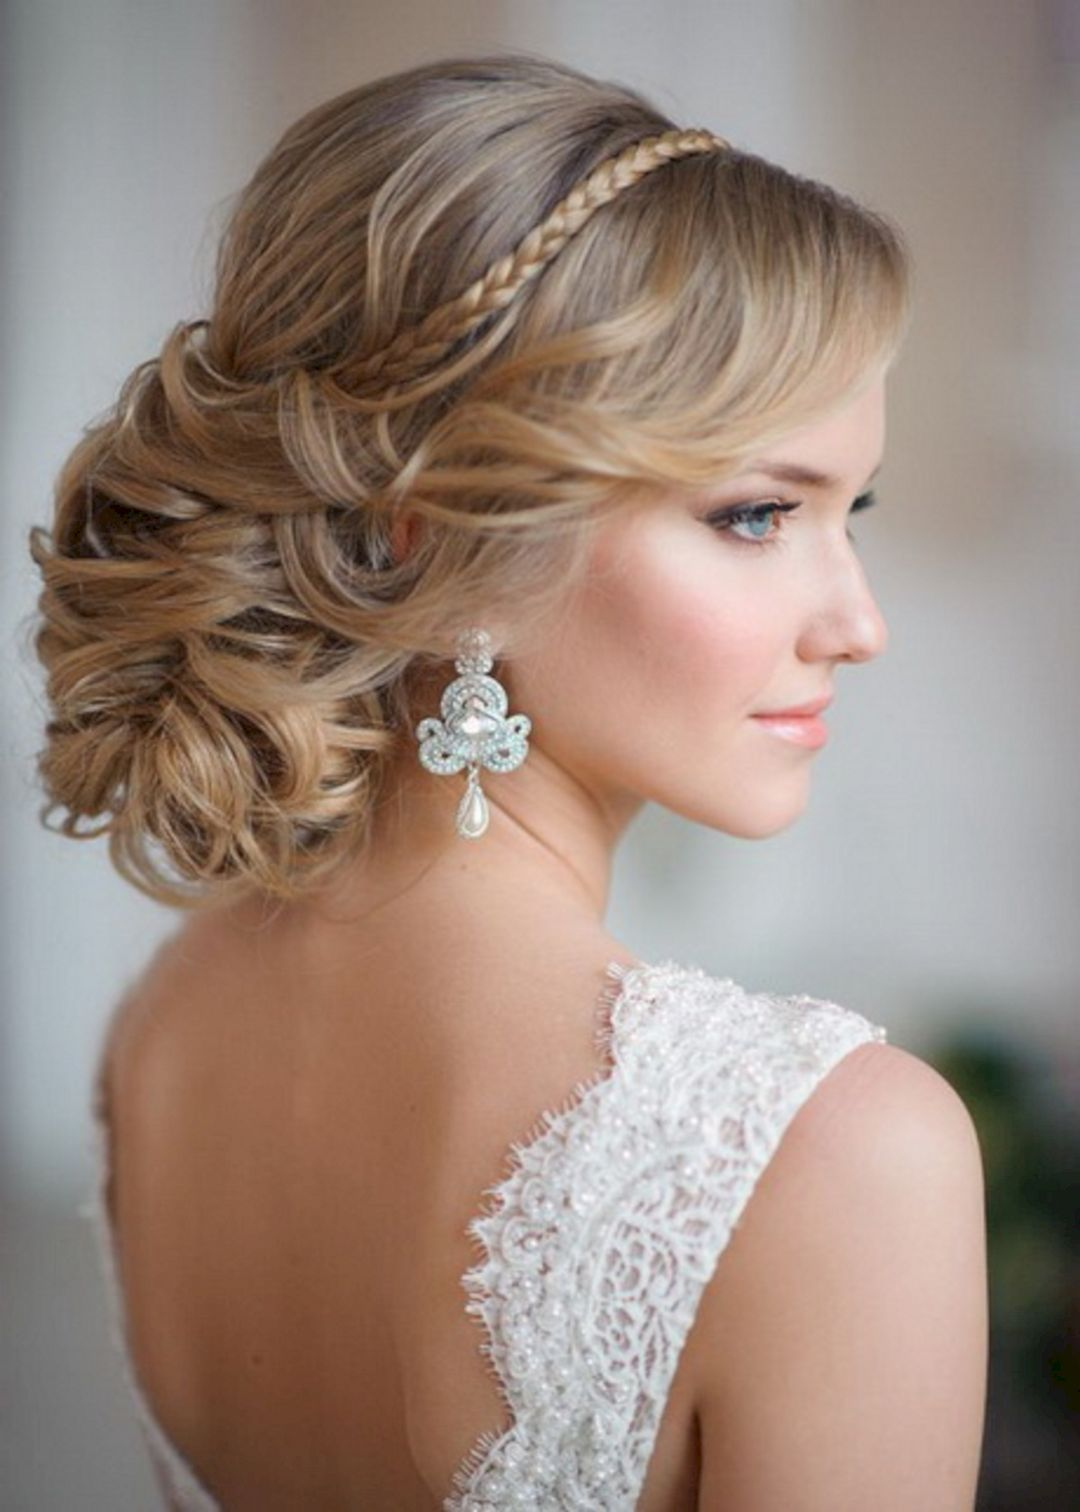 25+ Awesome Bridesmaid Hairstyles Ideas That Will Enhance ...